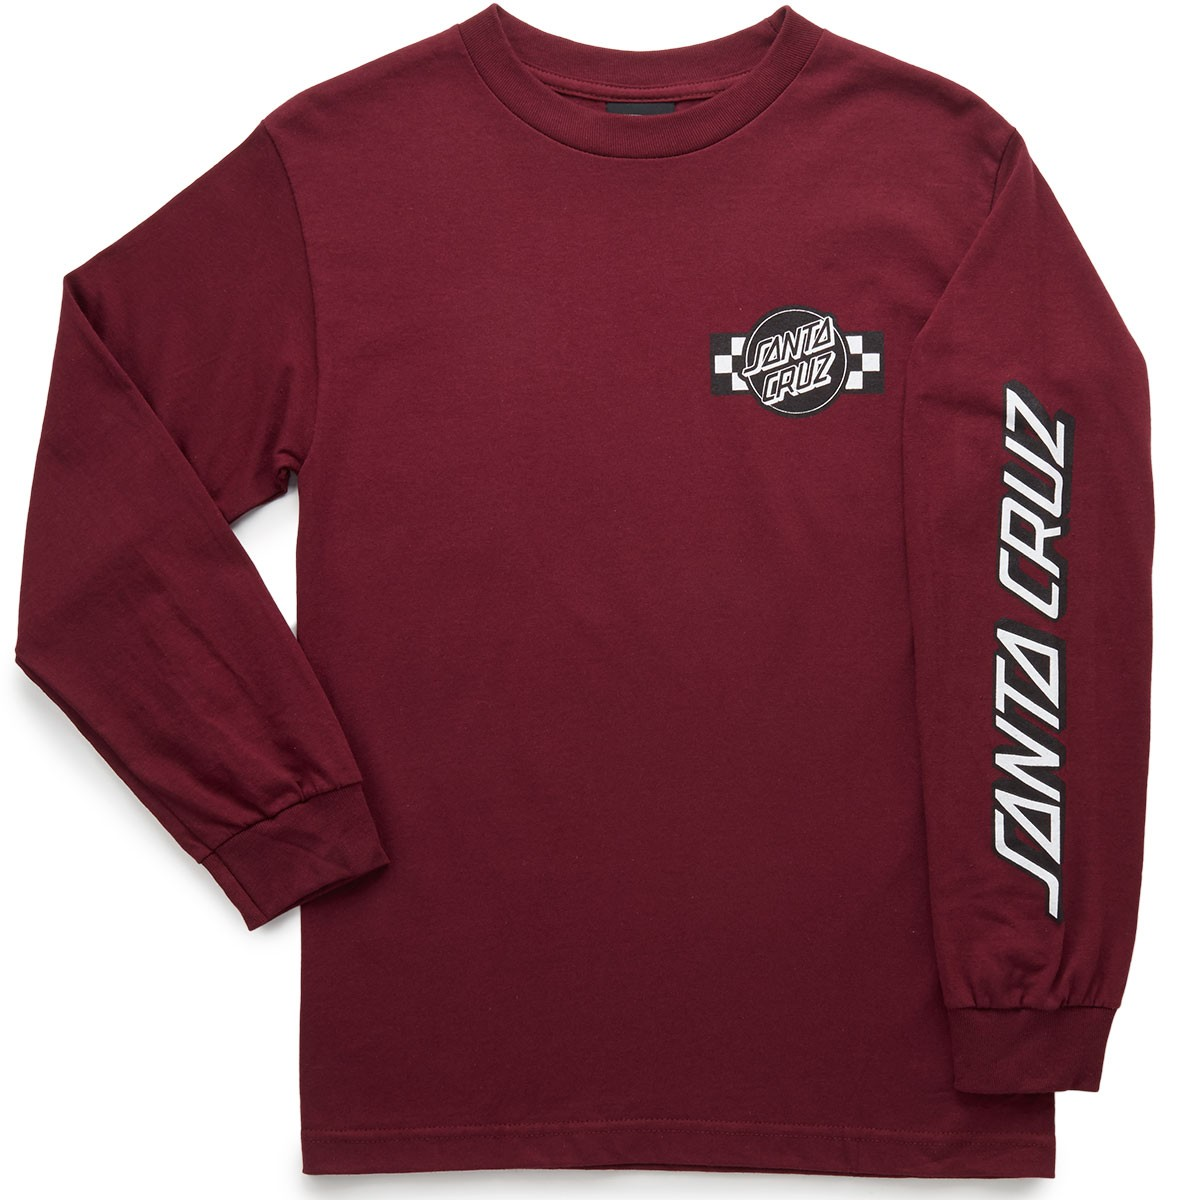 santa cruz contest long sleeve t shirt burgundy. Black Bedroom Furniture Sets. Home Design Ideas